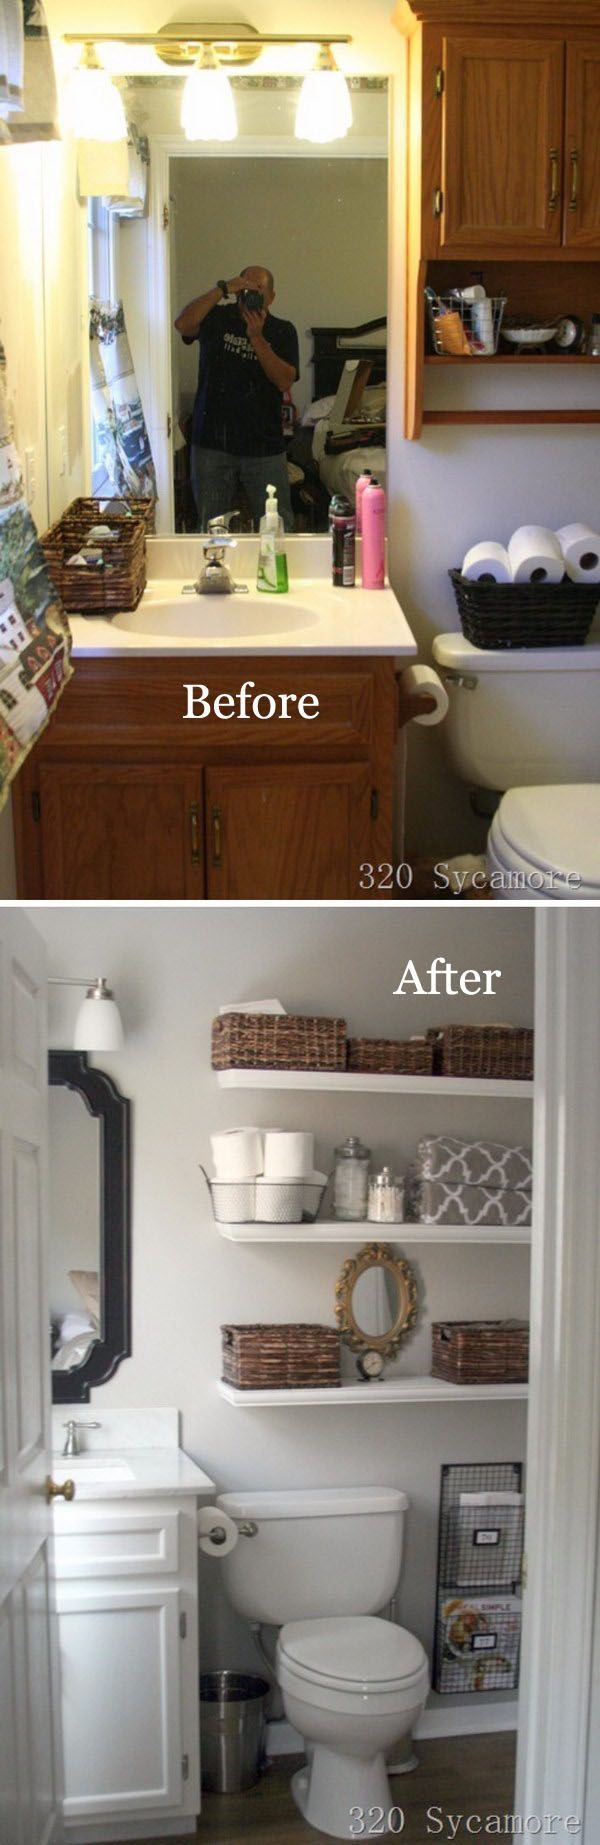 Best 25 small bathroom makeovers ideas on pinterest for Before and after small bathroom makeovers